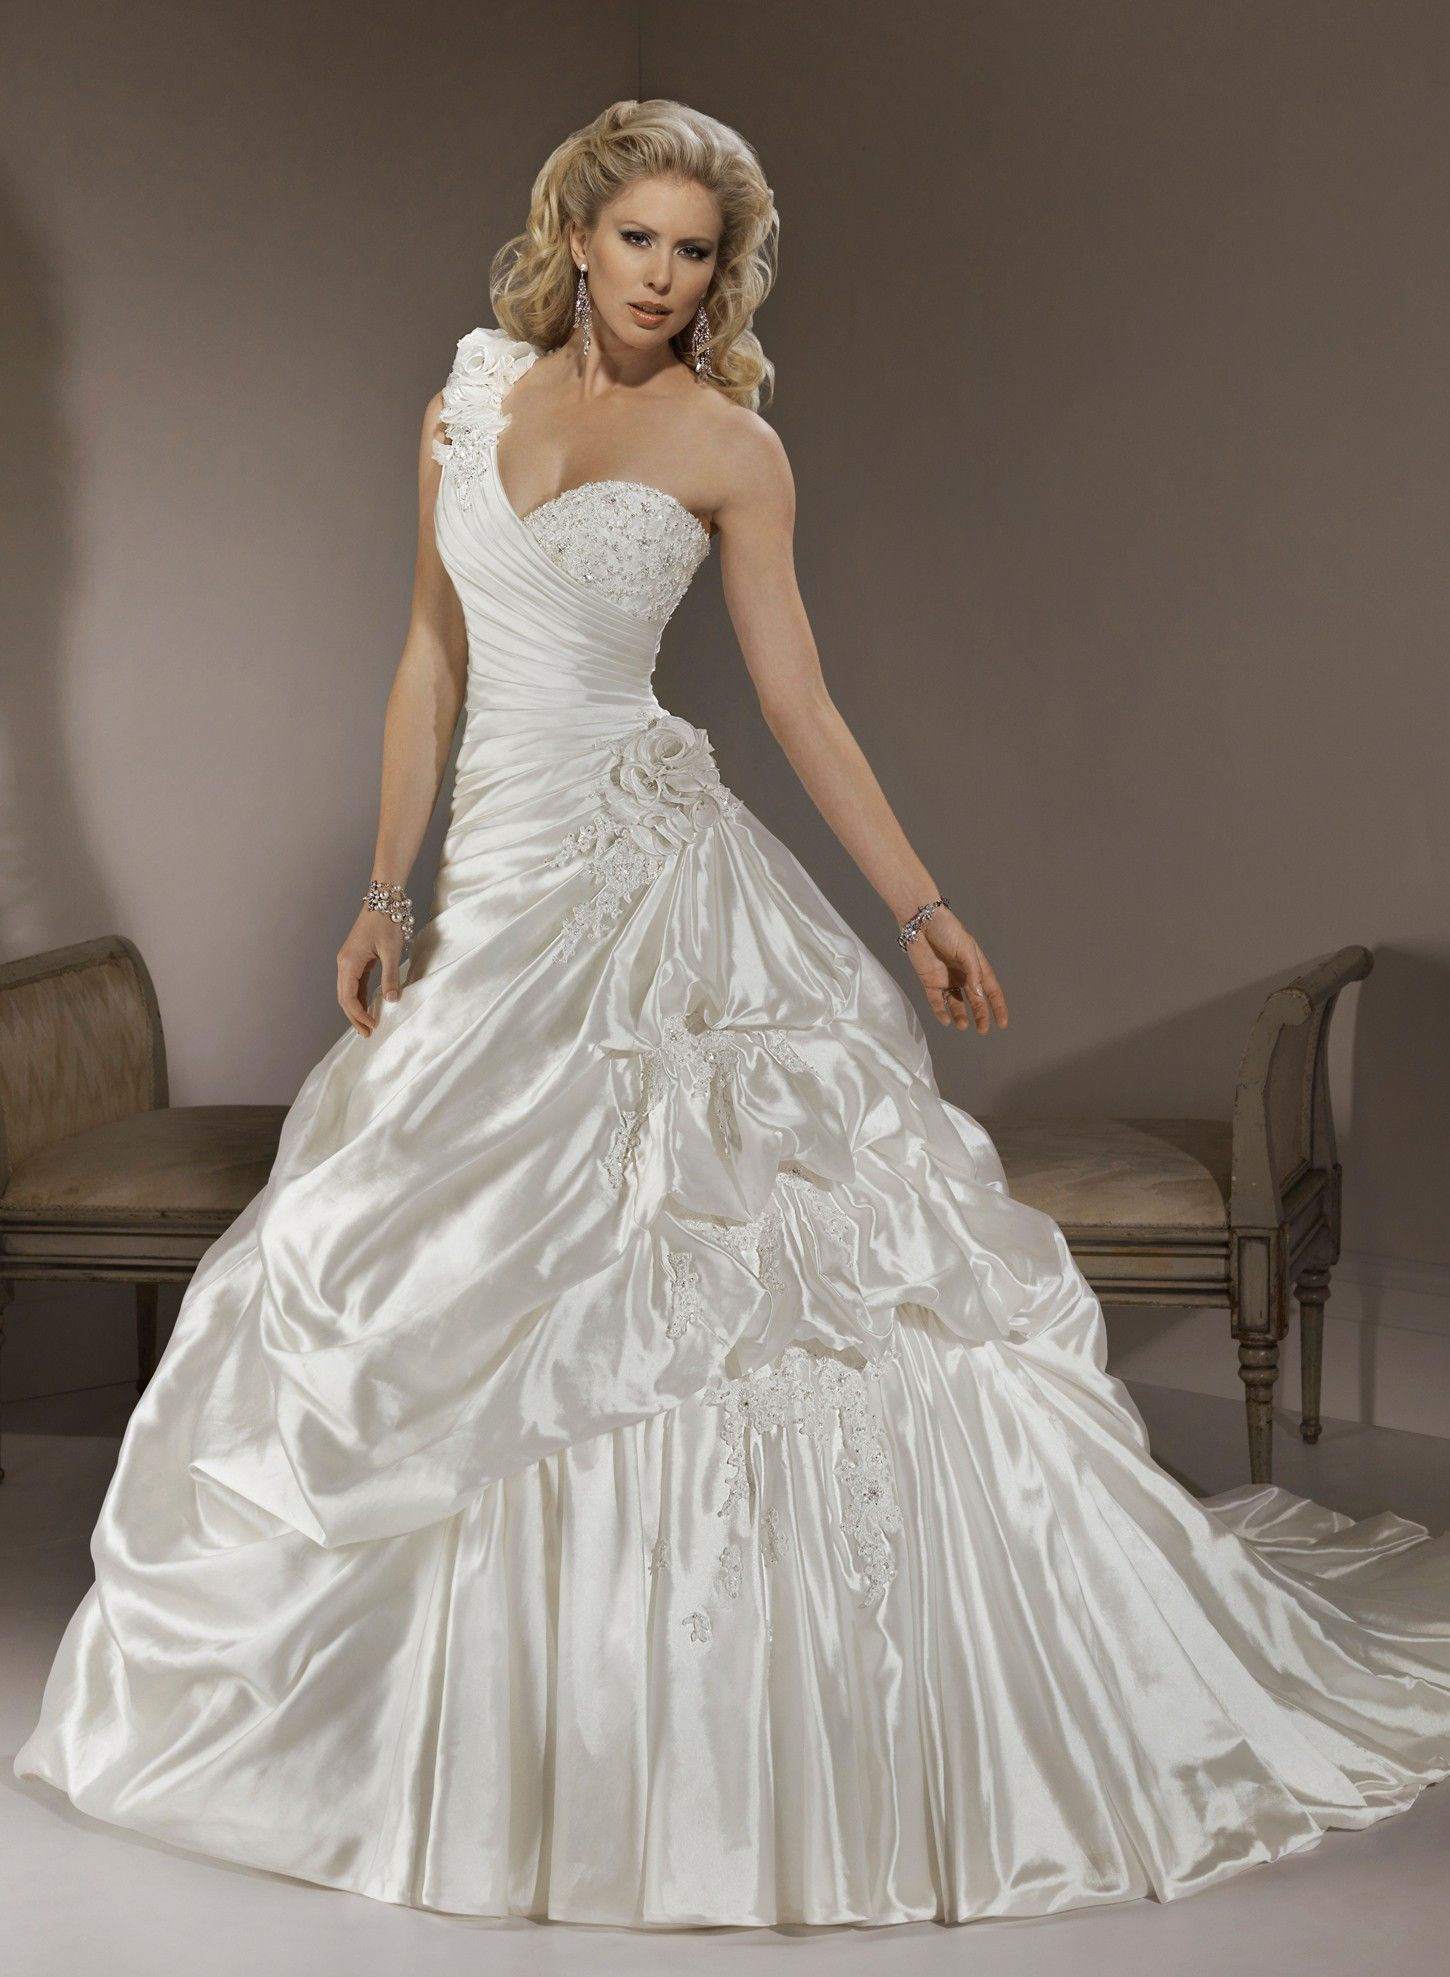 Wedding dresses in london shops  shoulder neckline ball gown wedding dress Fashion Style  Fashion